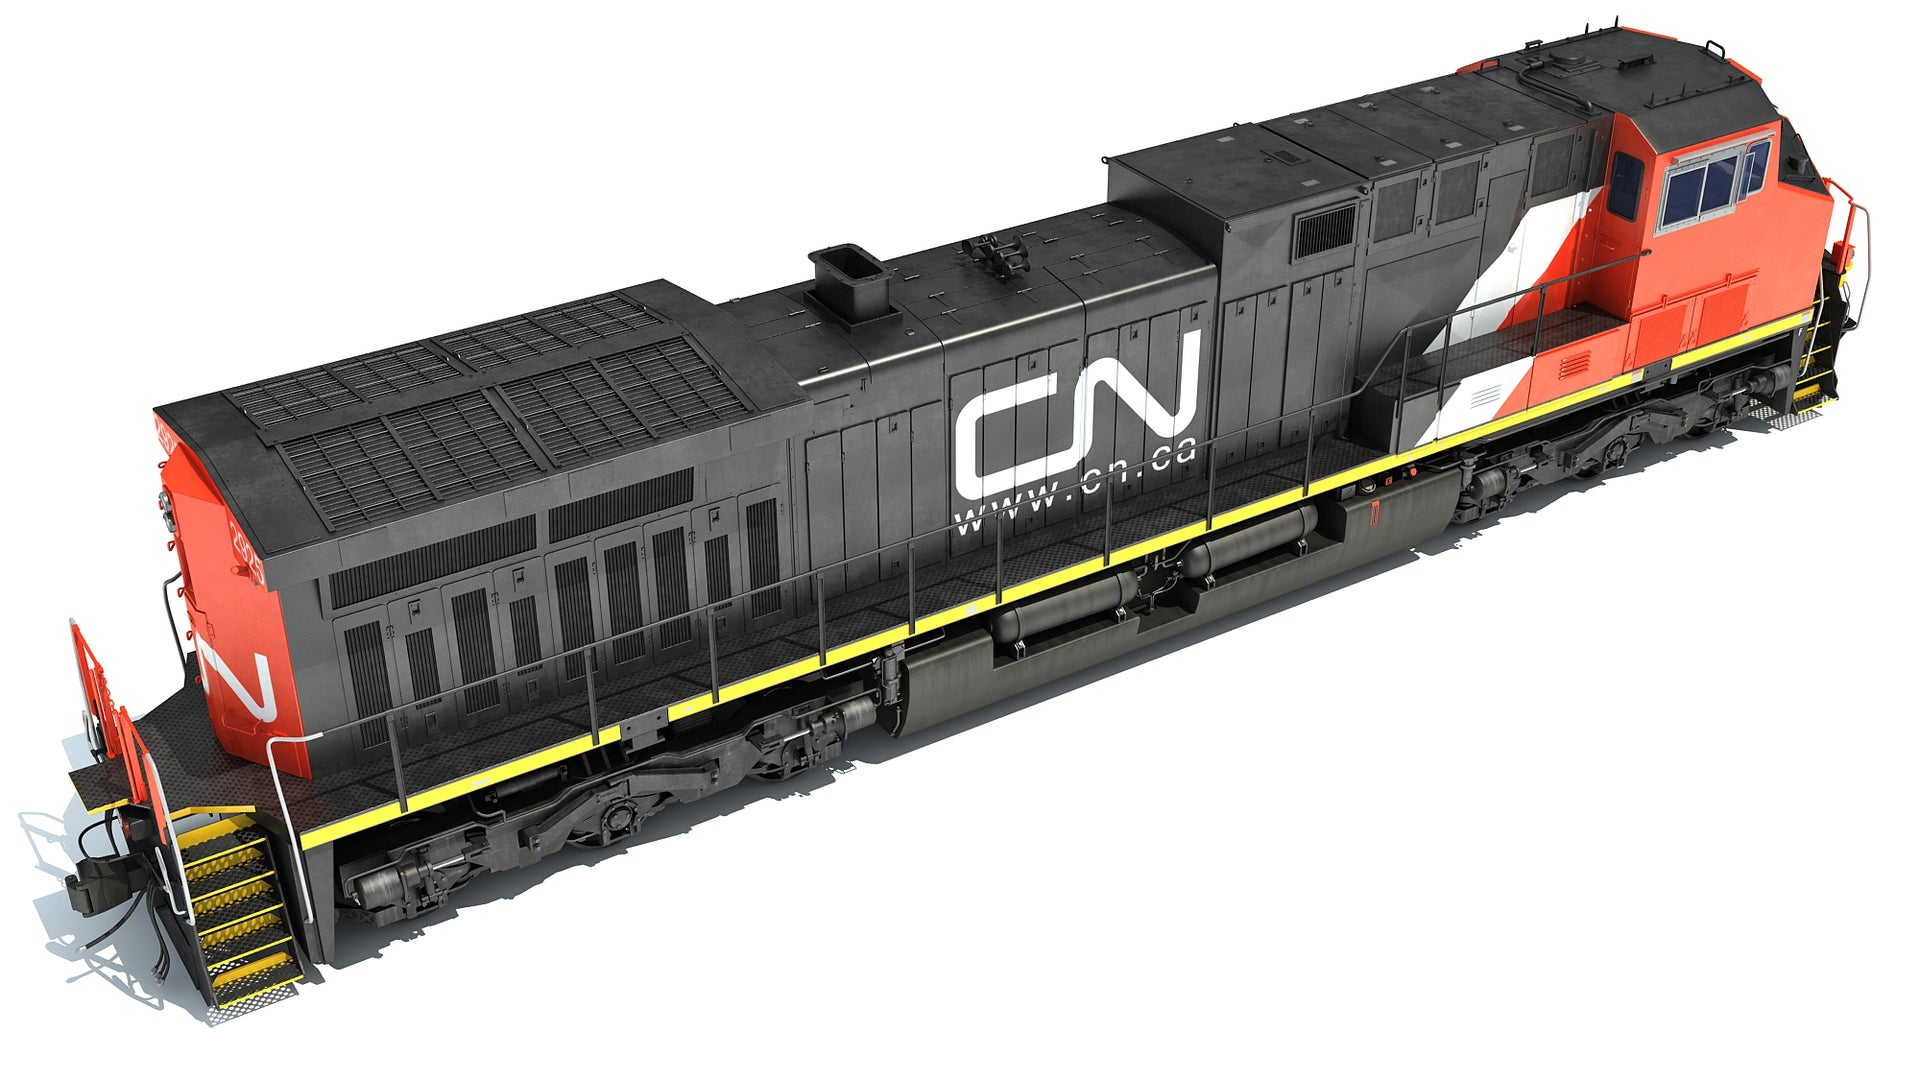 Locomotive Canadian National Railway CN